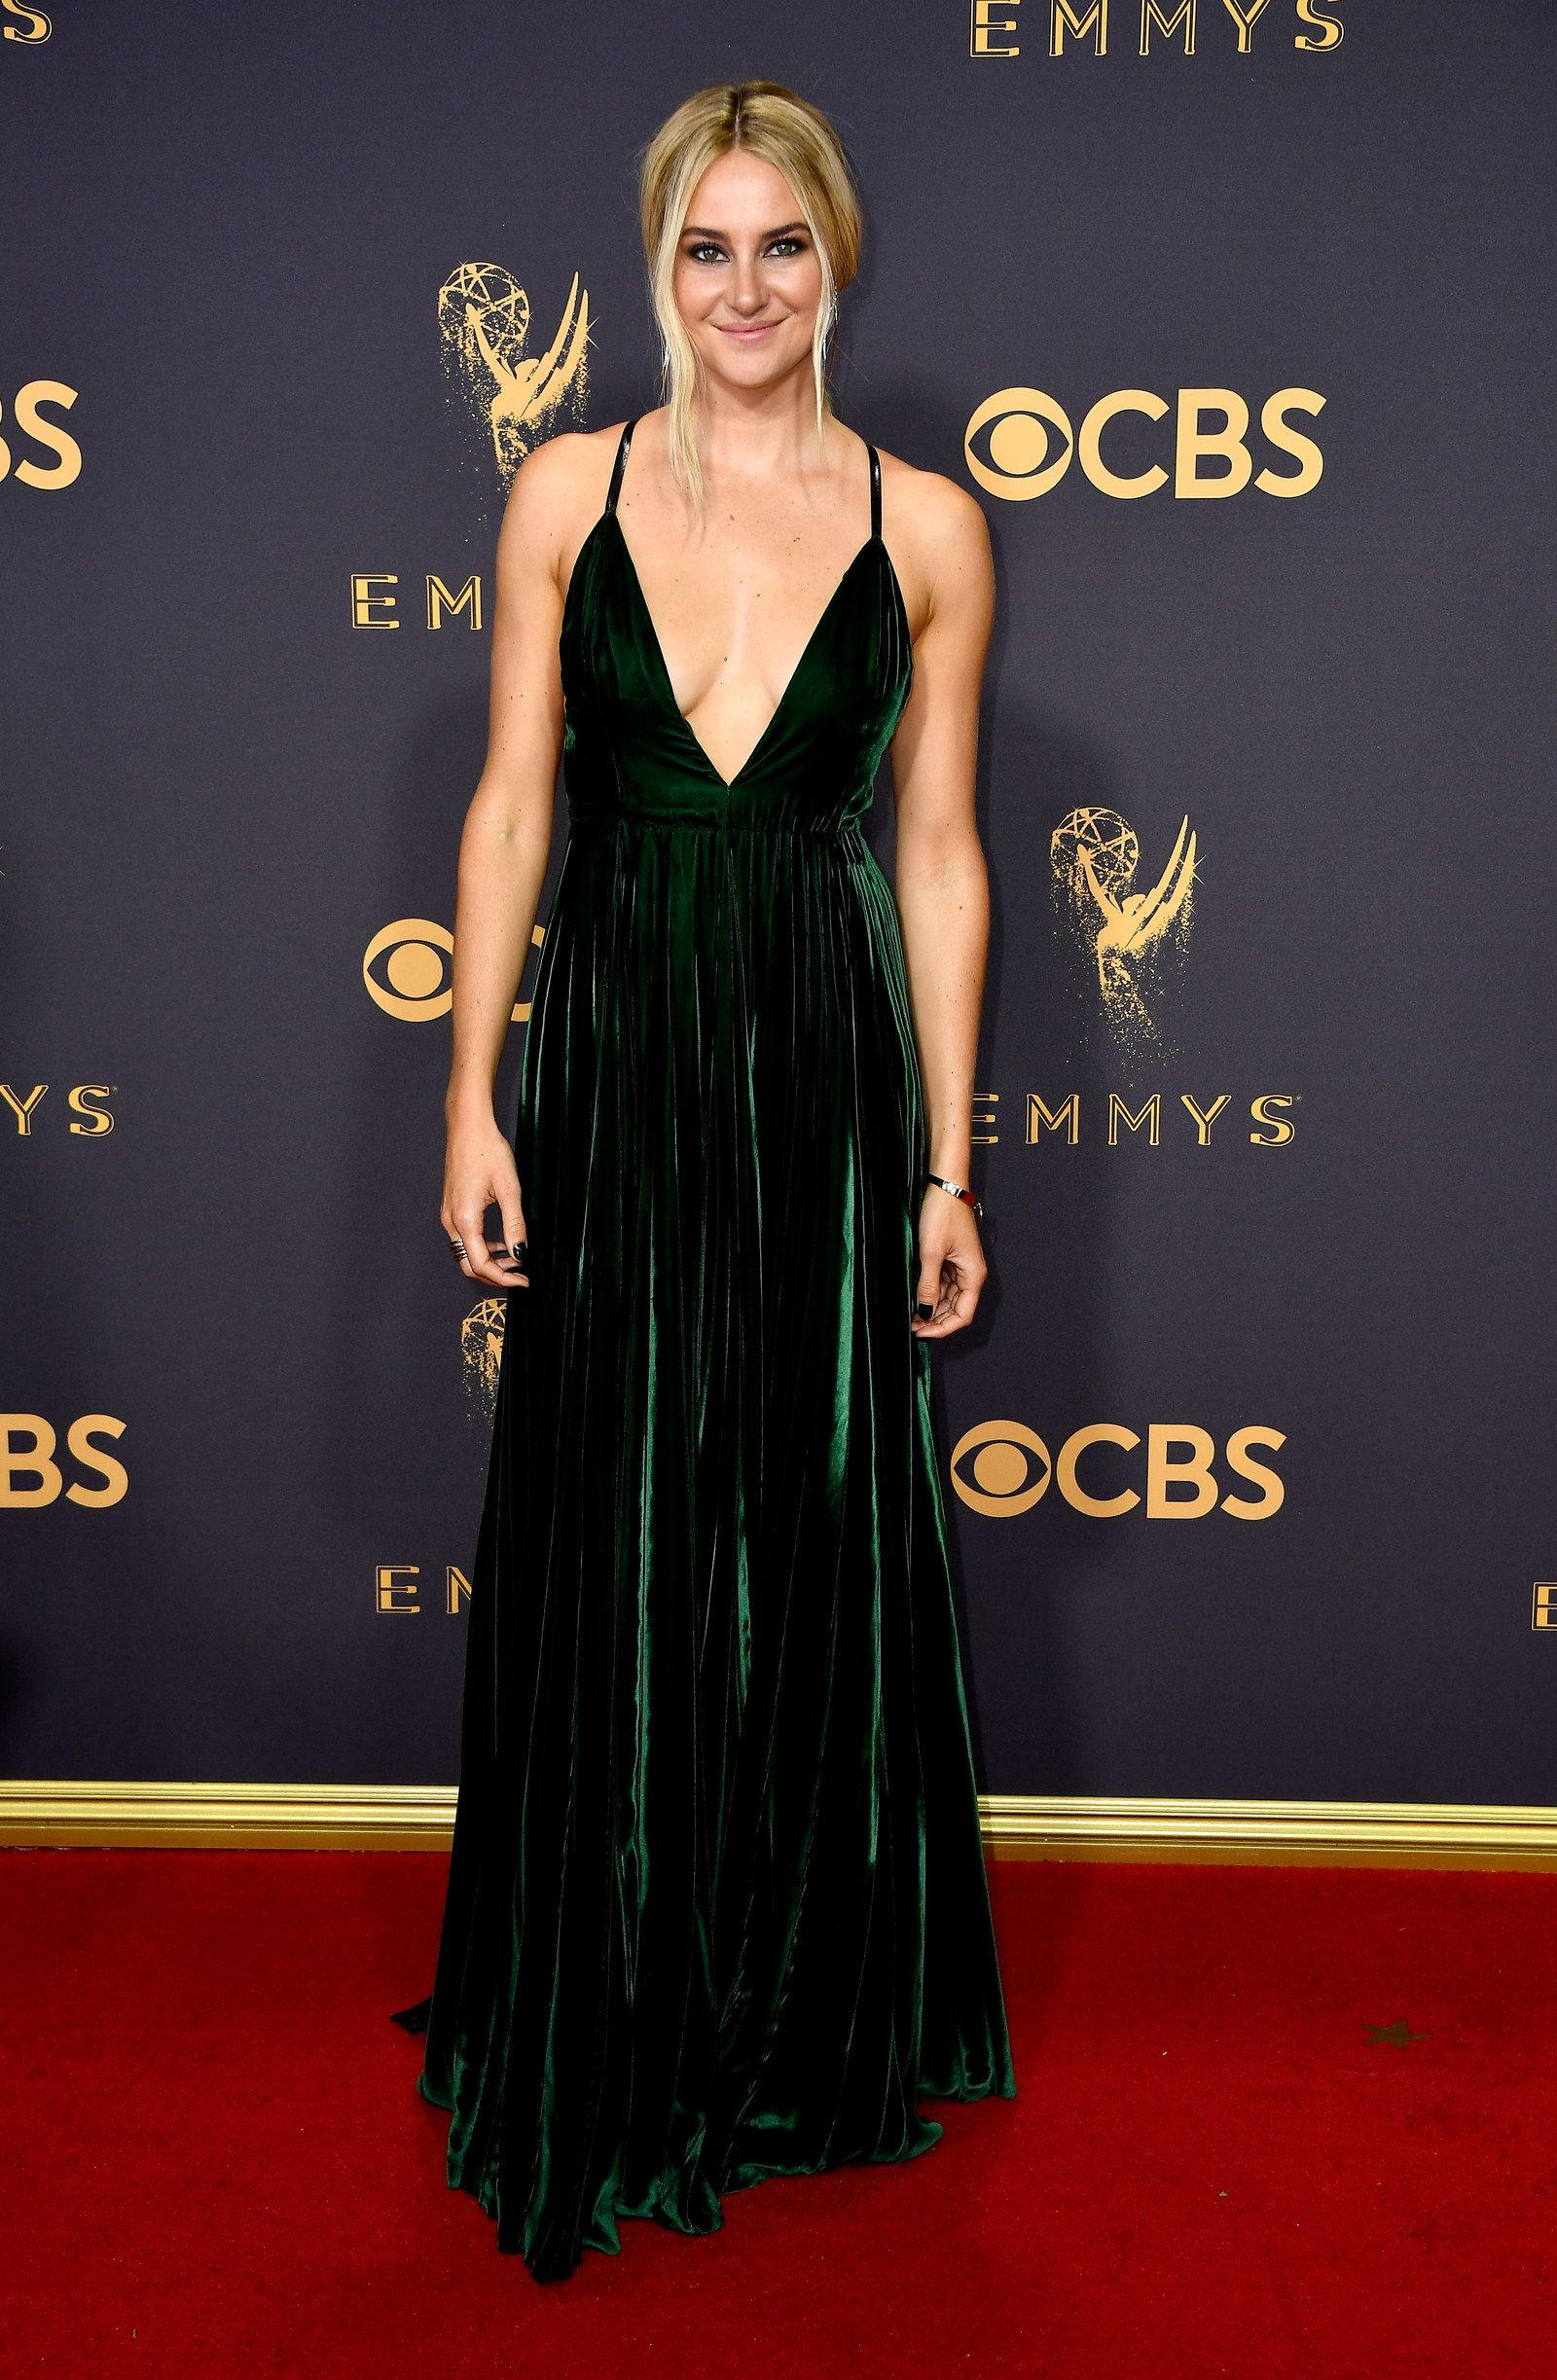 Fashion at the emmy awards big night red carpet and velvet gown